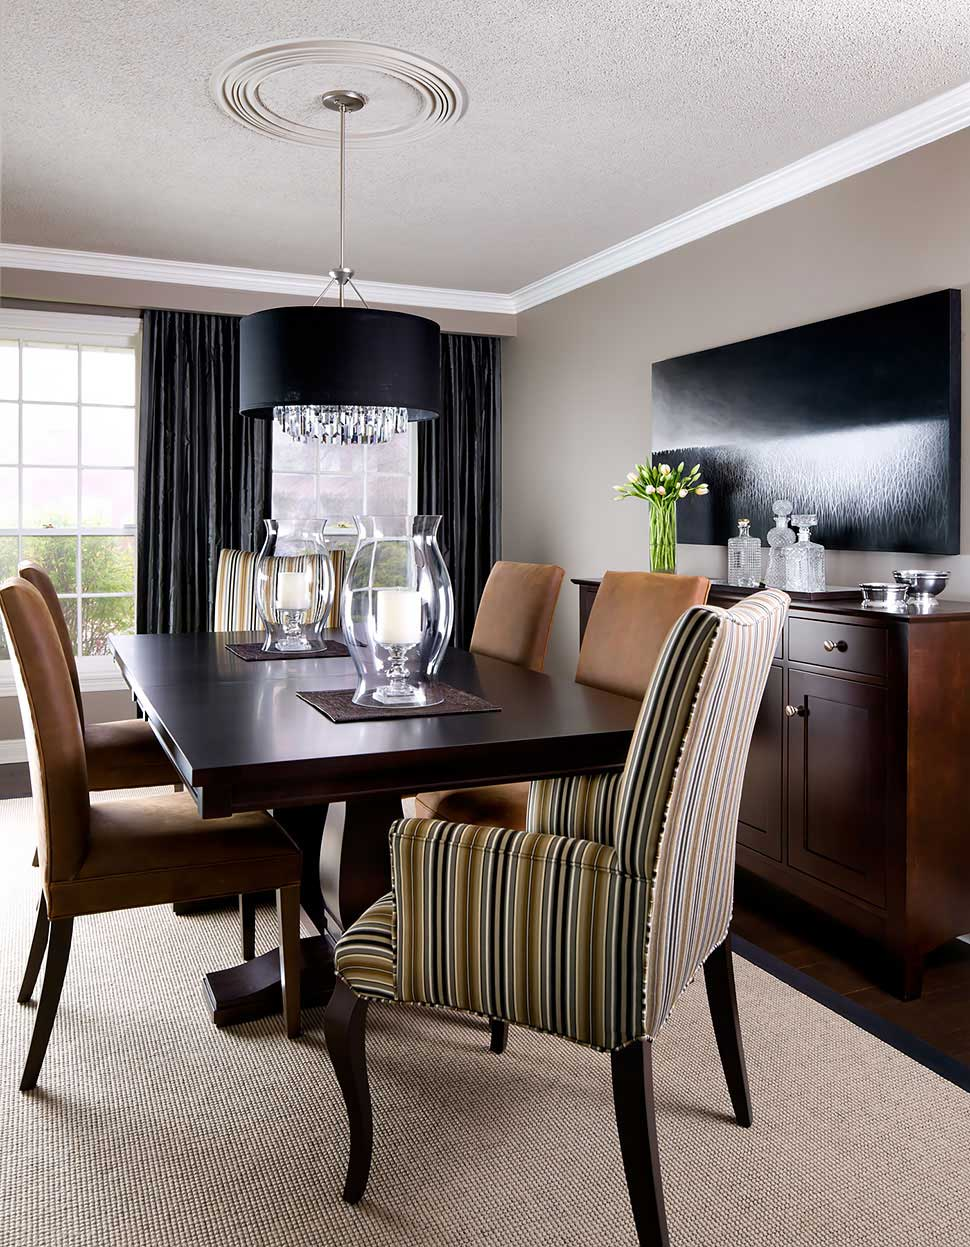 dining room with black drum shade chandelier and candle table lamps